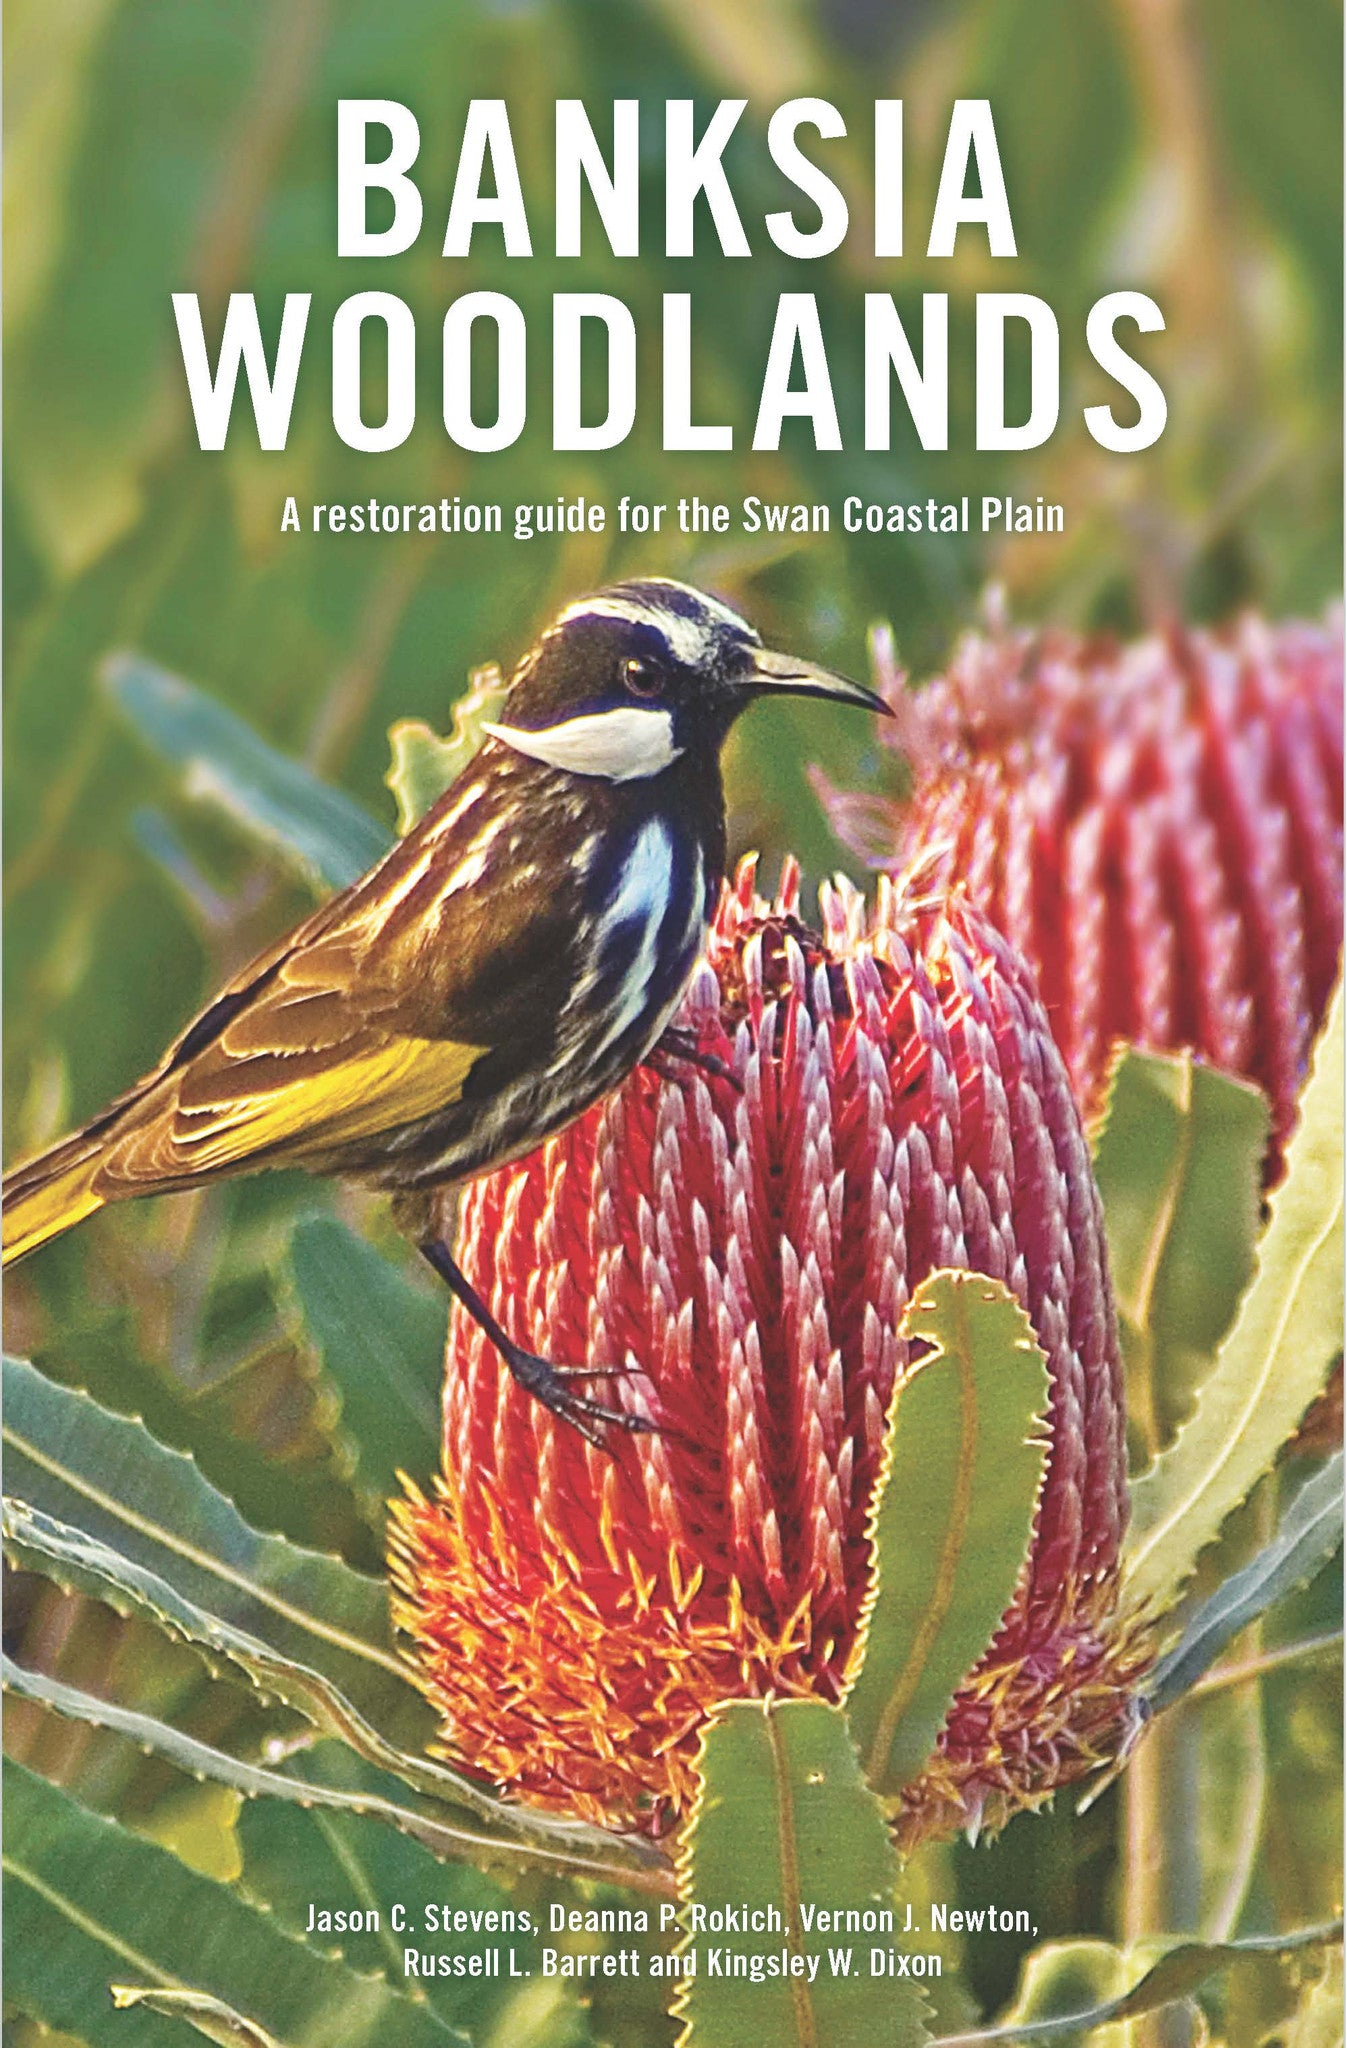 Banksia woodlands: A restoration guide for the Swan Coastal Plain